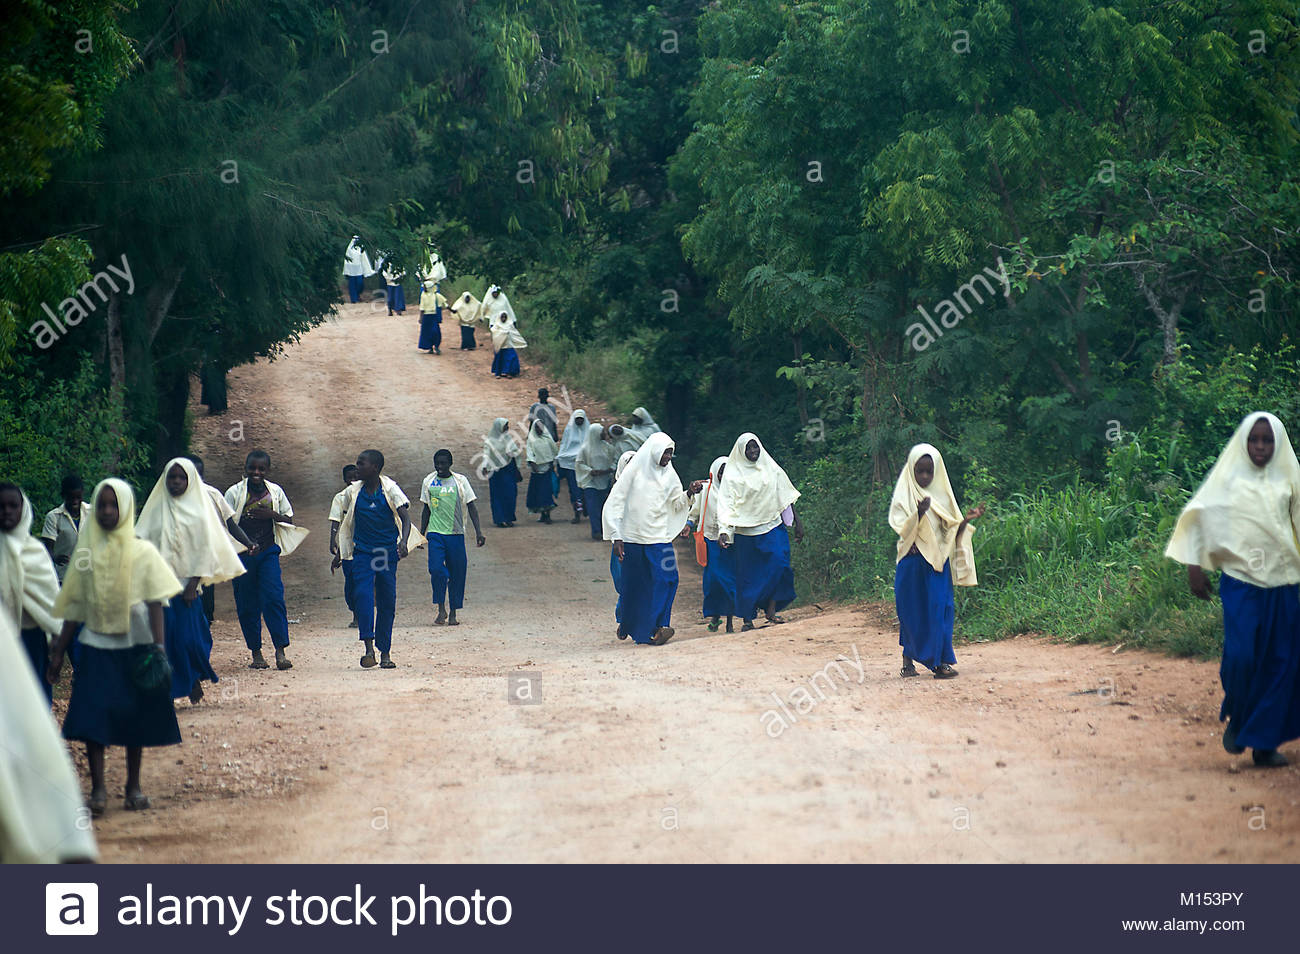 Muslim girls leaving school wearing white and yellow headscarves and blue dresses or robes walking on an unpaved - Stock Image